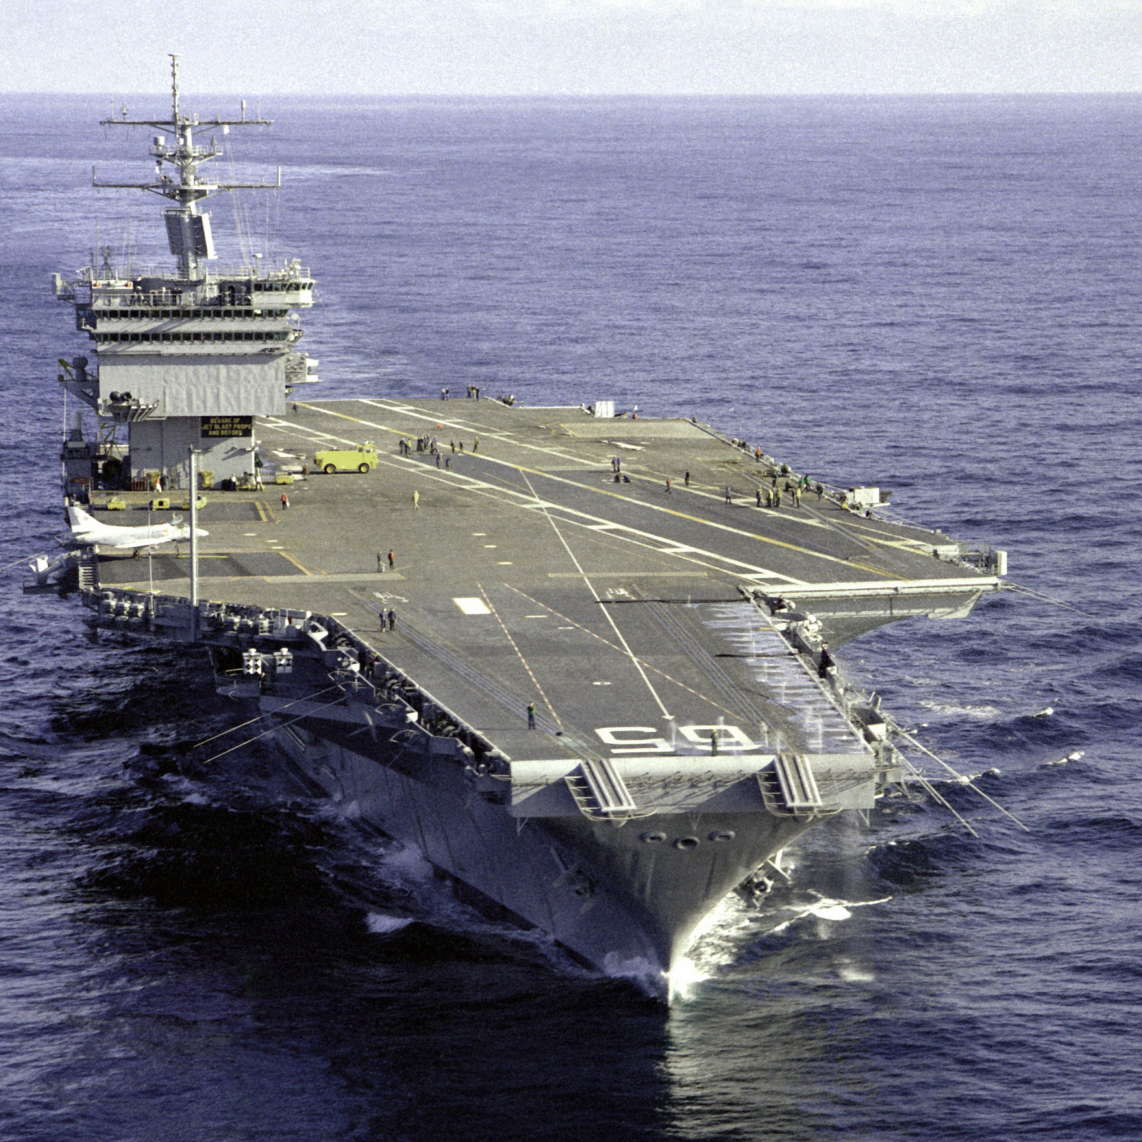 USS_Enterprise_(CVN-65),_bow_view_1983